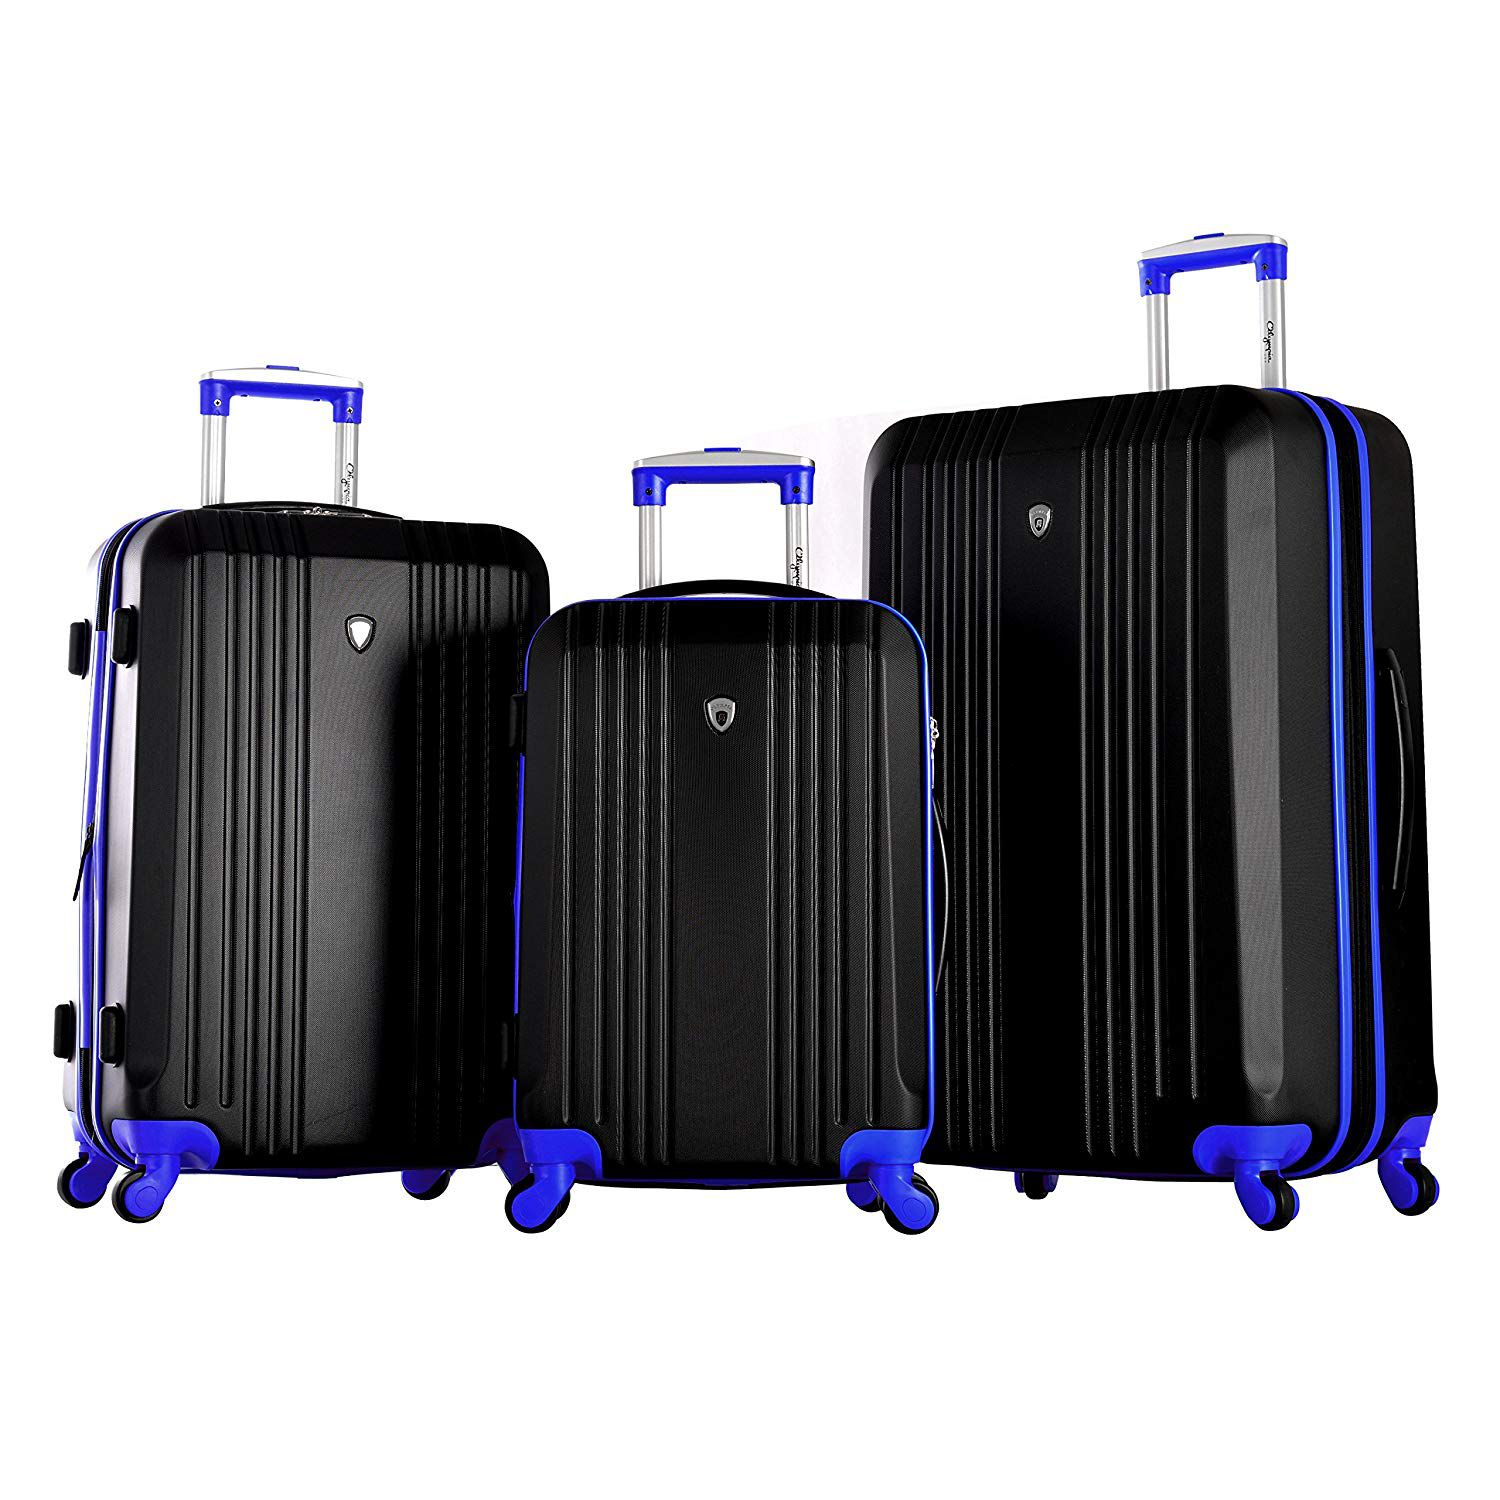 20e5647abc0b The 8 Best Olympia USA Luggage Items of 2019